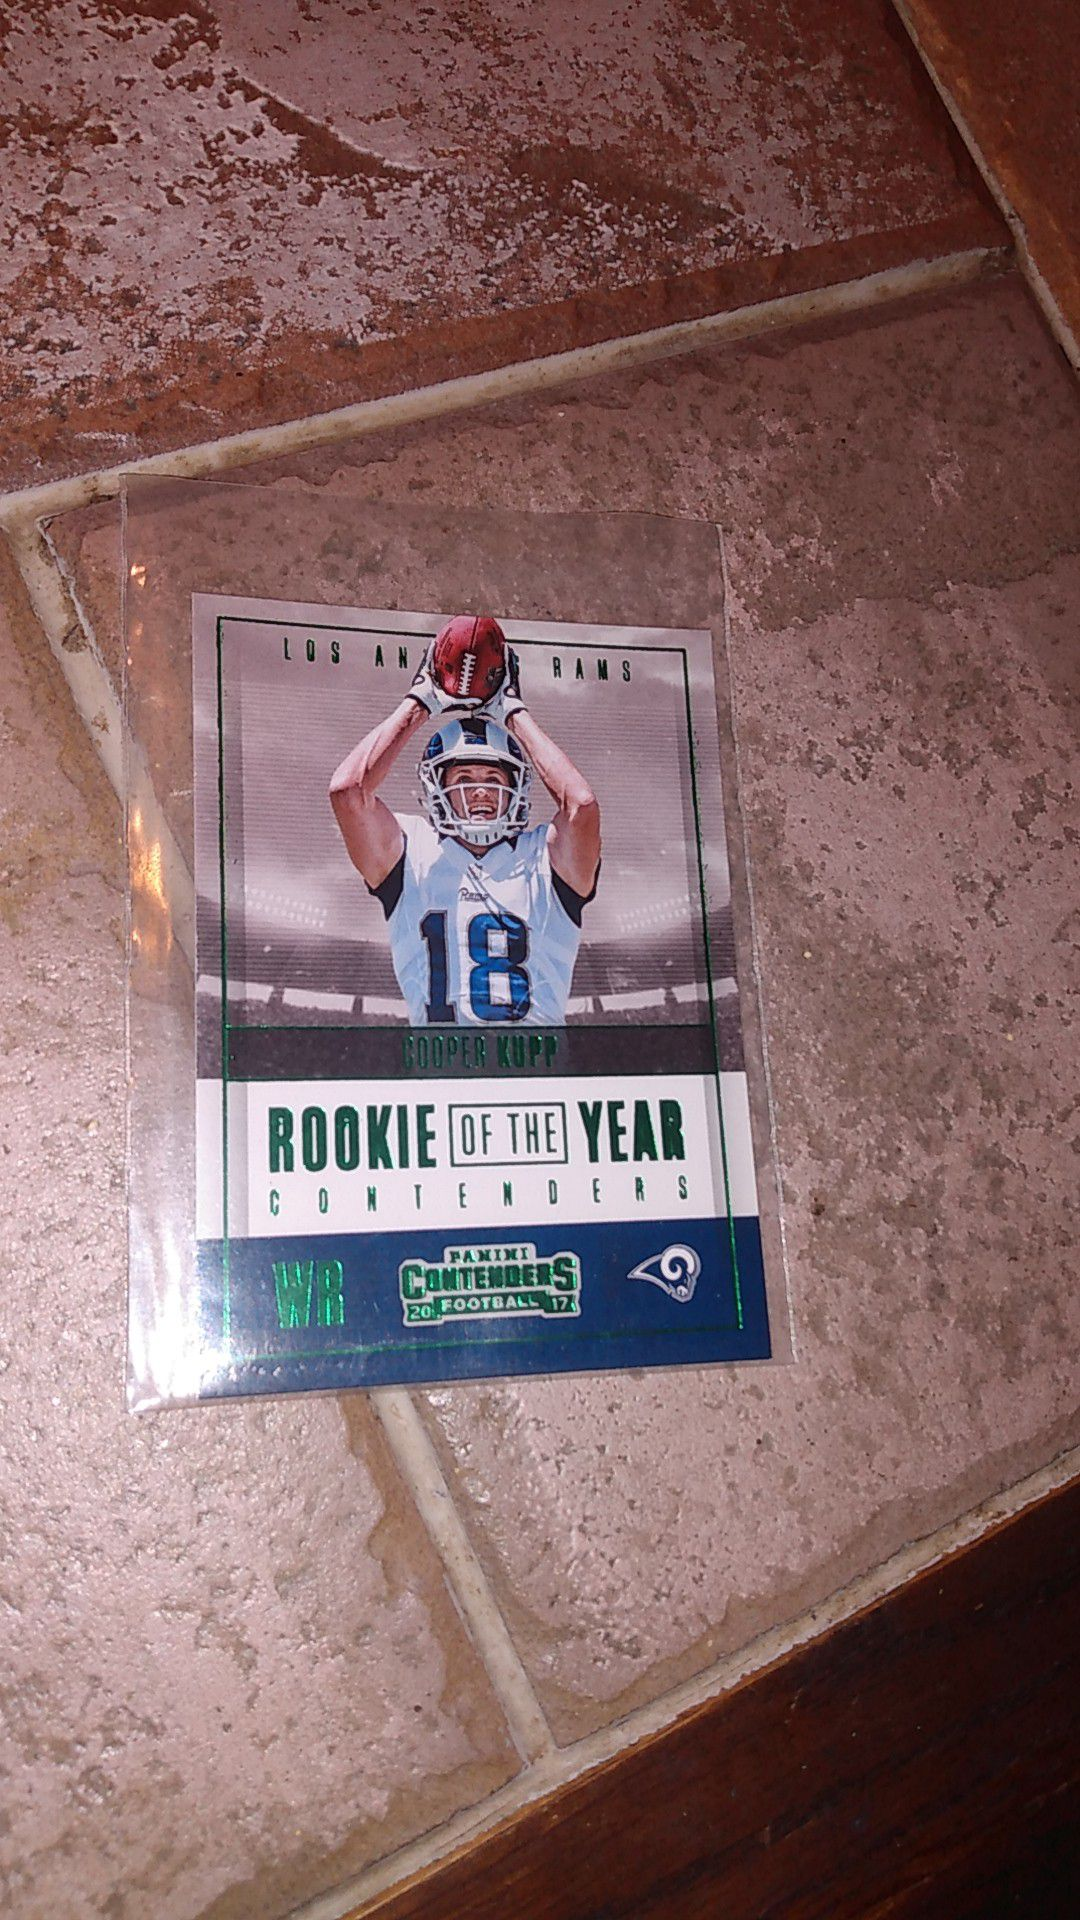 2017 Green Panini contenders Cooper Kupp Rookie of the year card